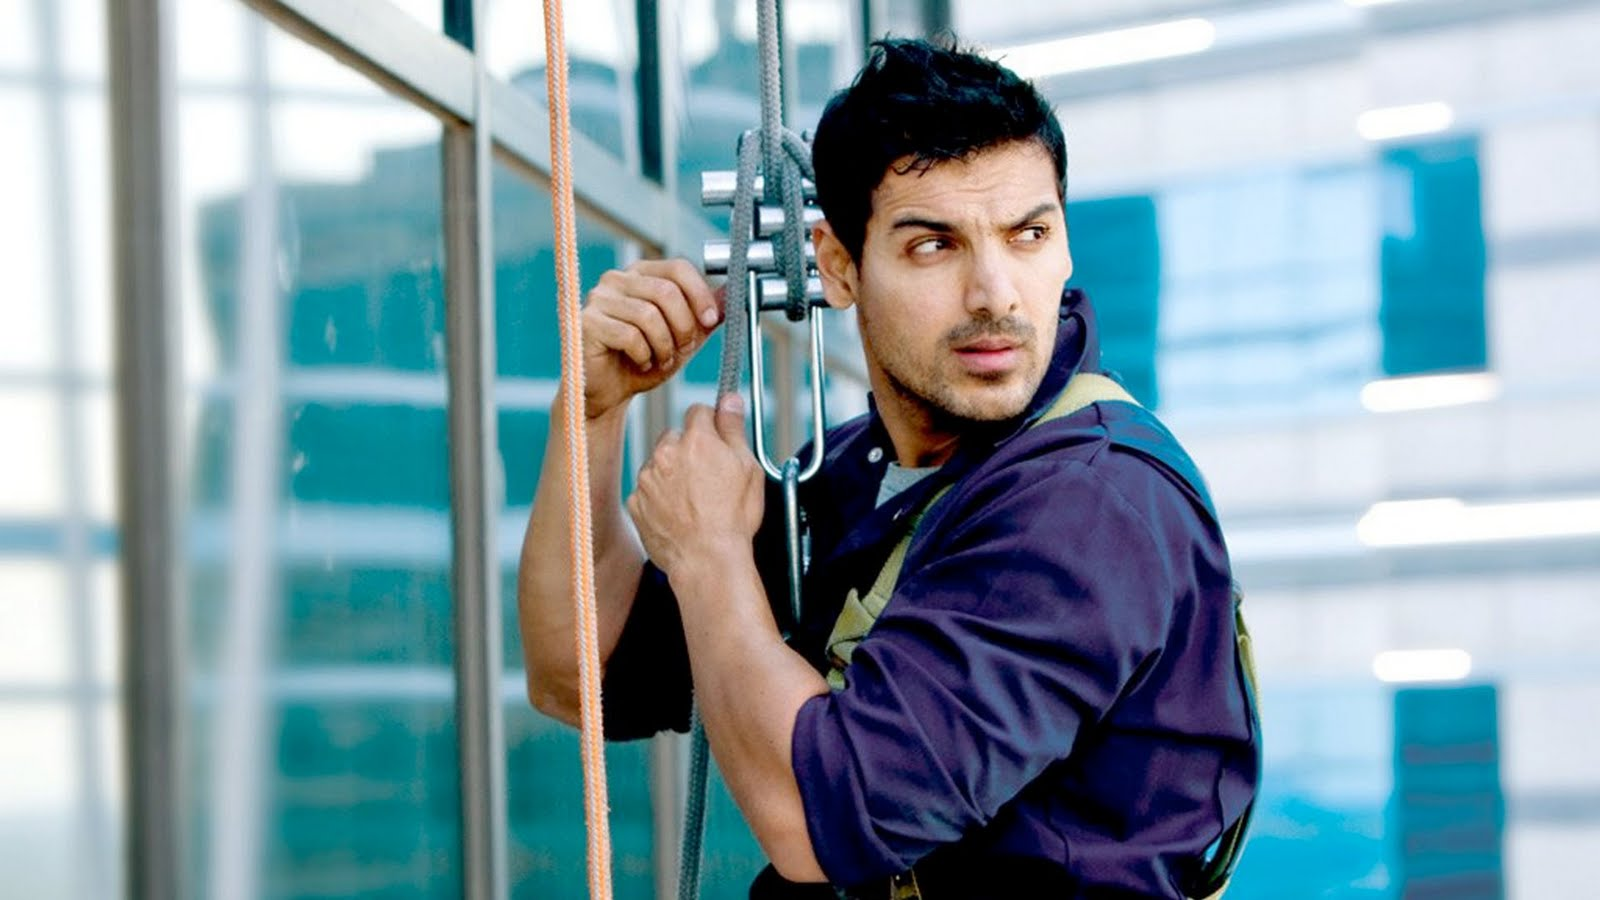 wallpapers world : john abraham